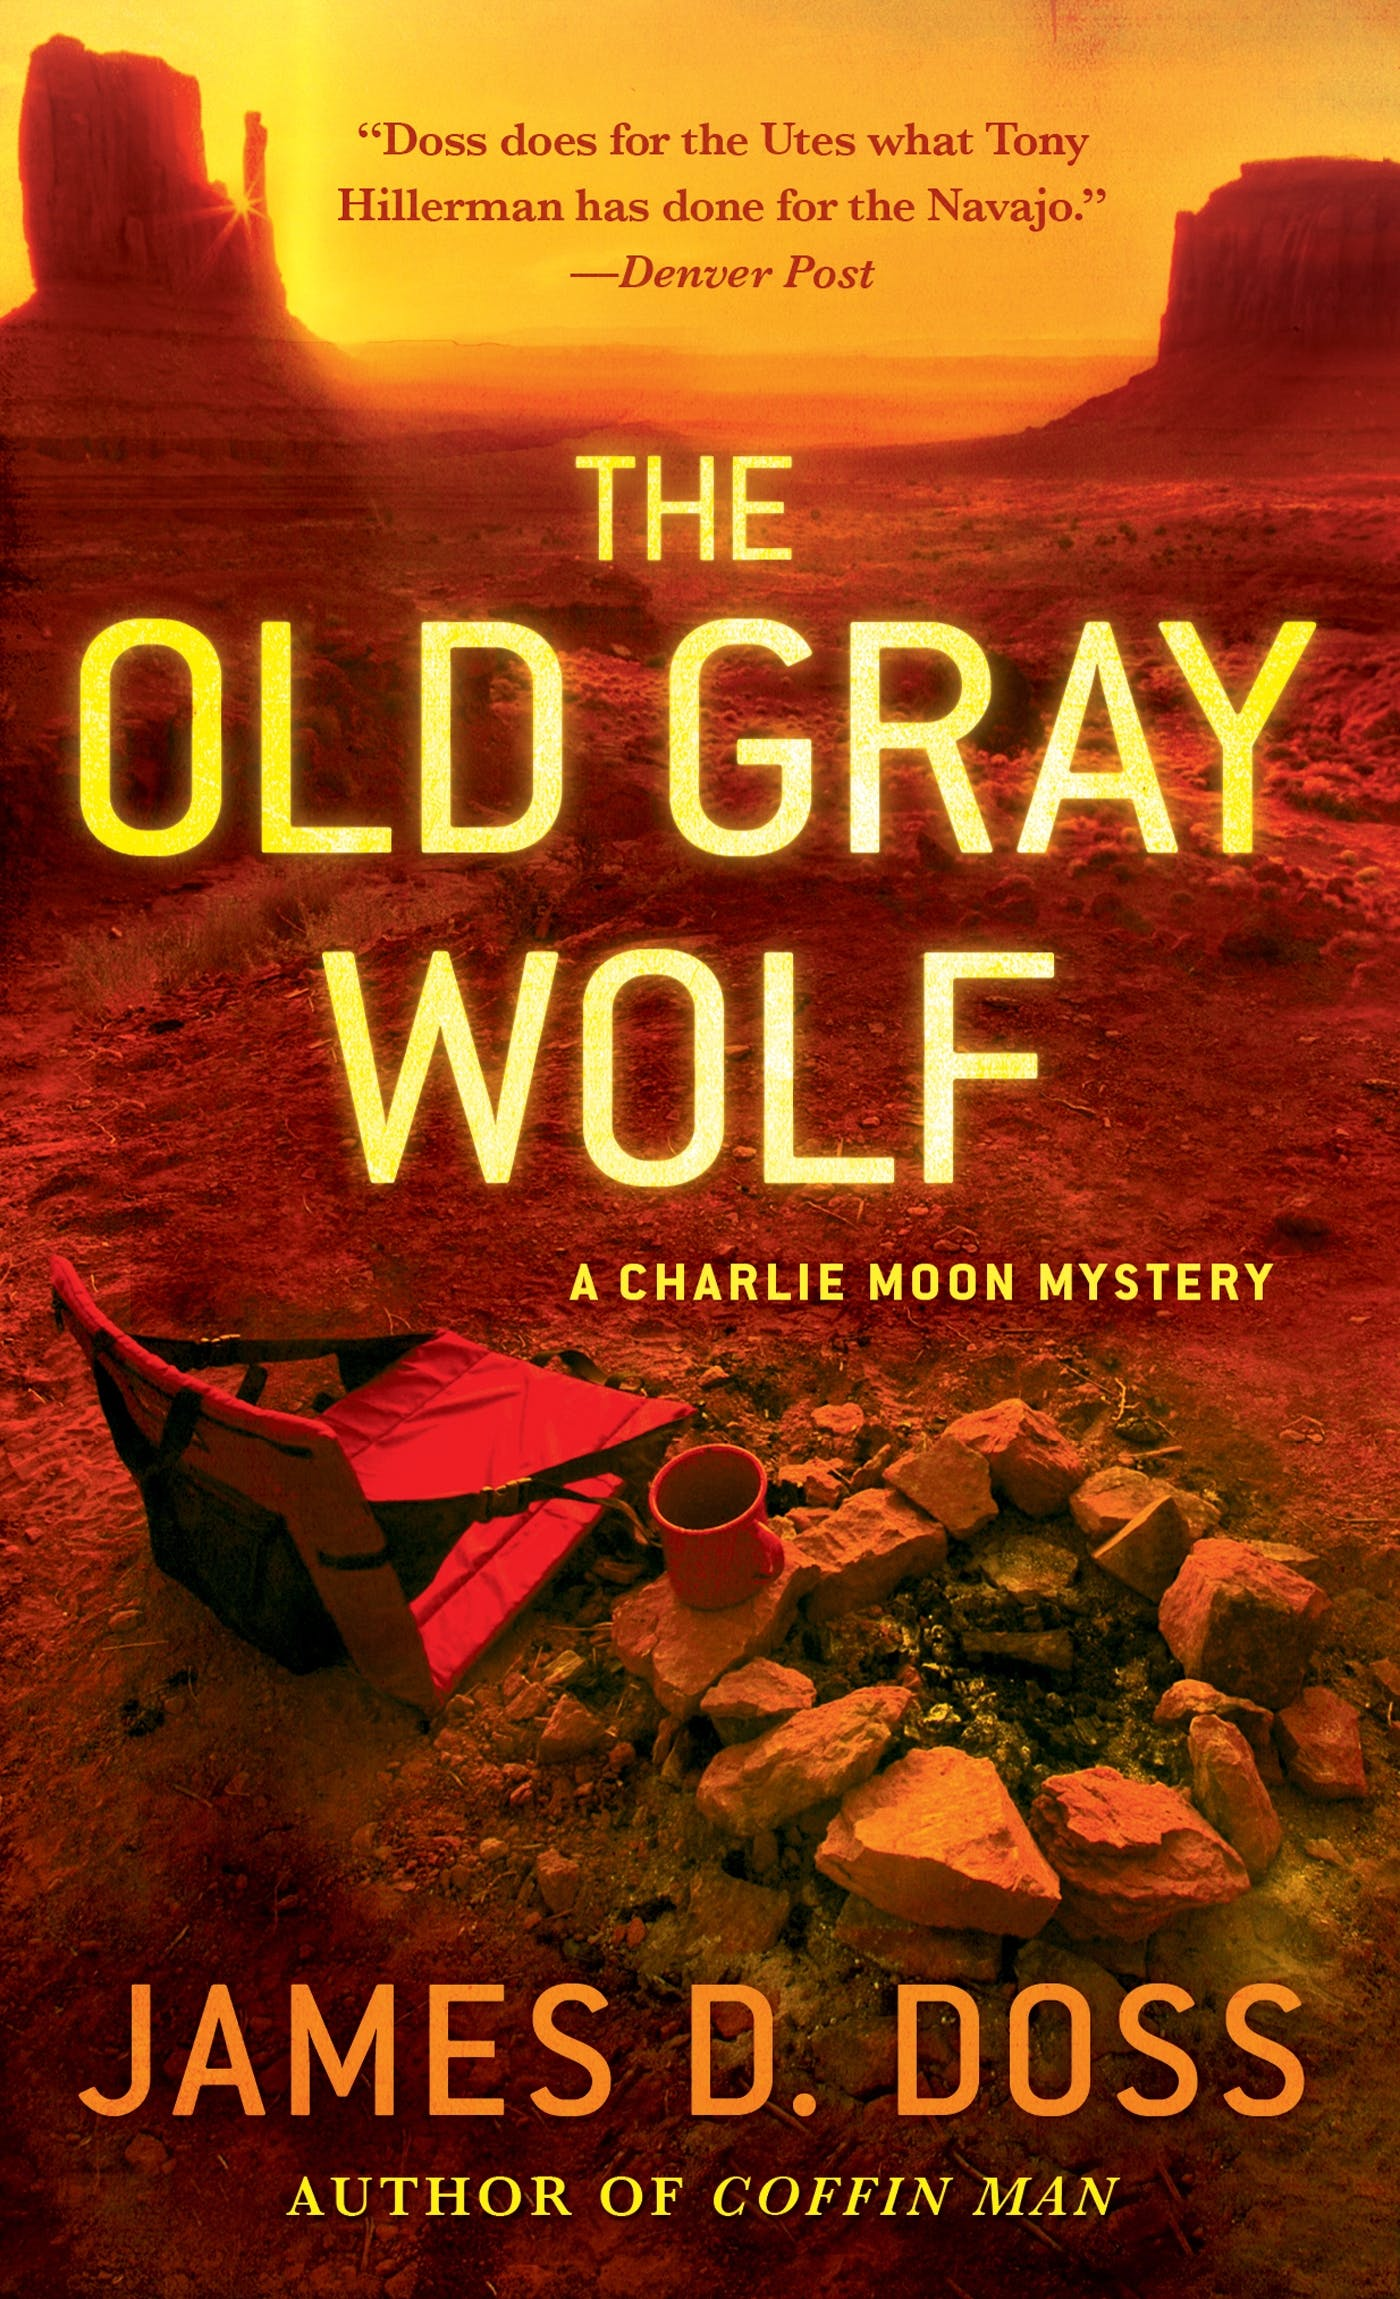 Image of The Old Gray Wolf